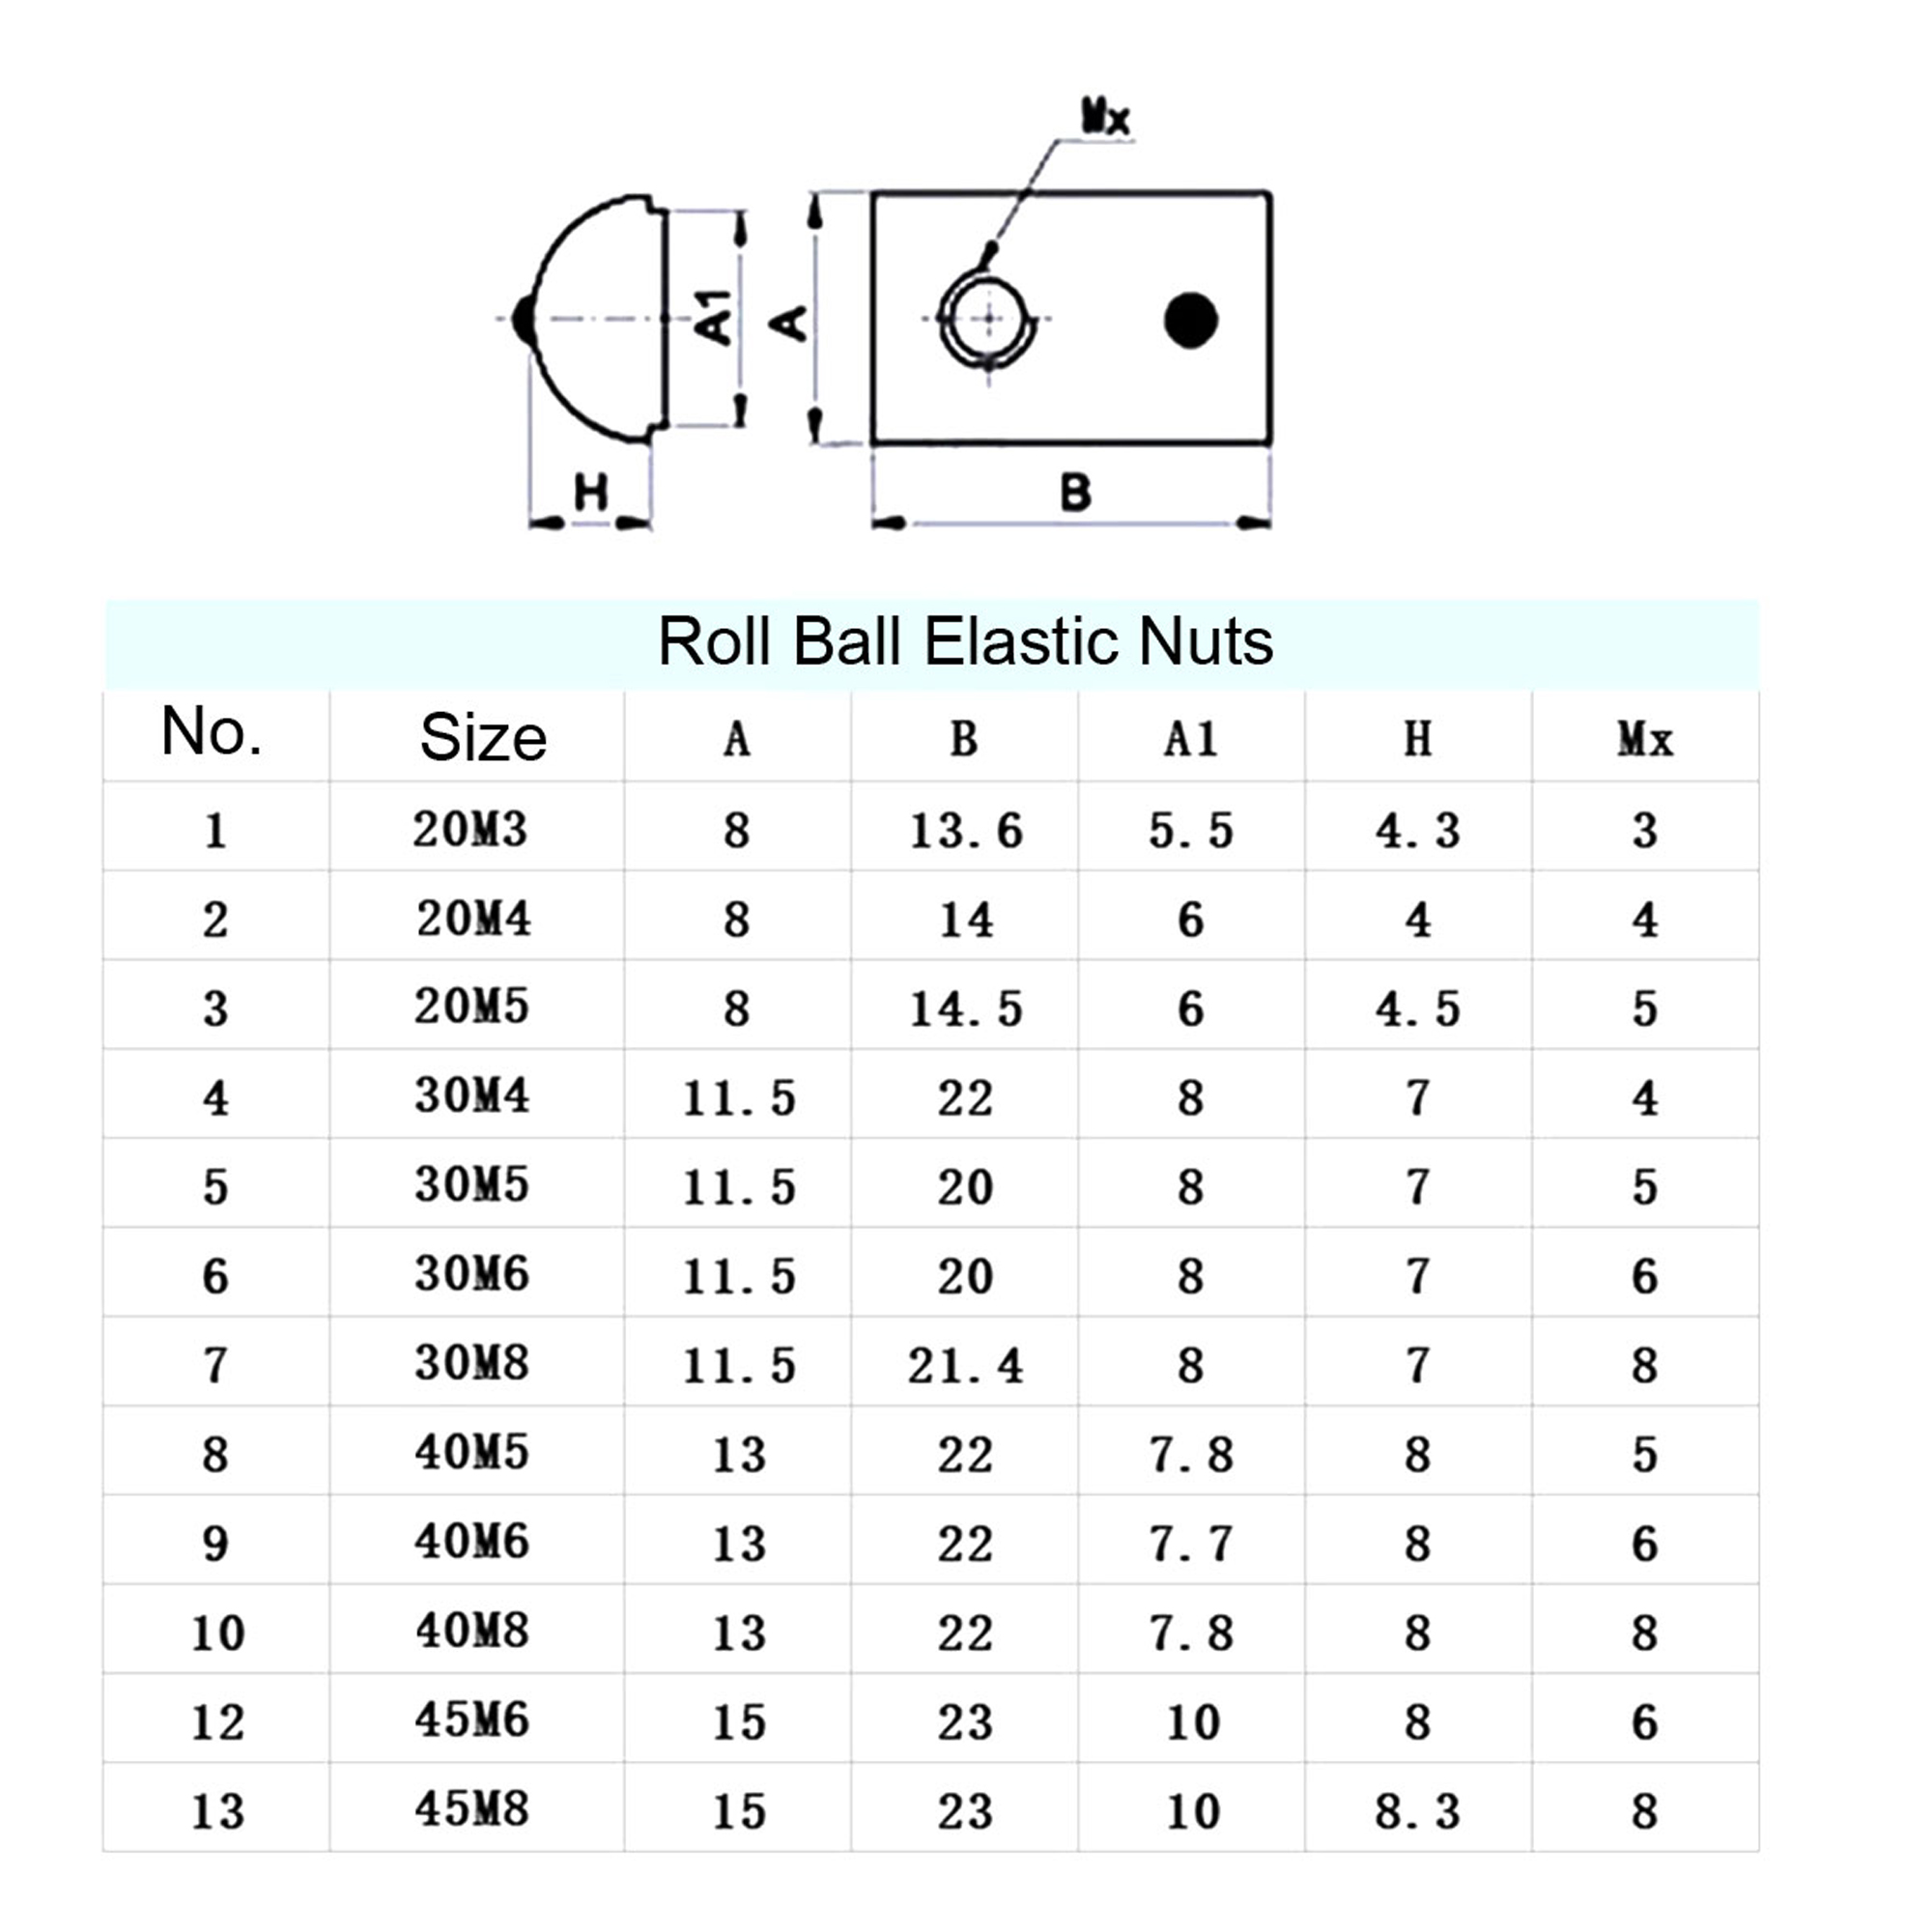 Roll-In Spring M5 T Nut, Roll Ball Elastic Nuts for 2020 Series Aluminum Extrusion Profile, 20 Pcs - image 2 of 5